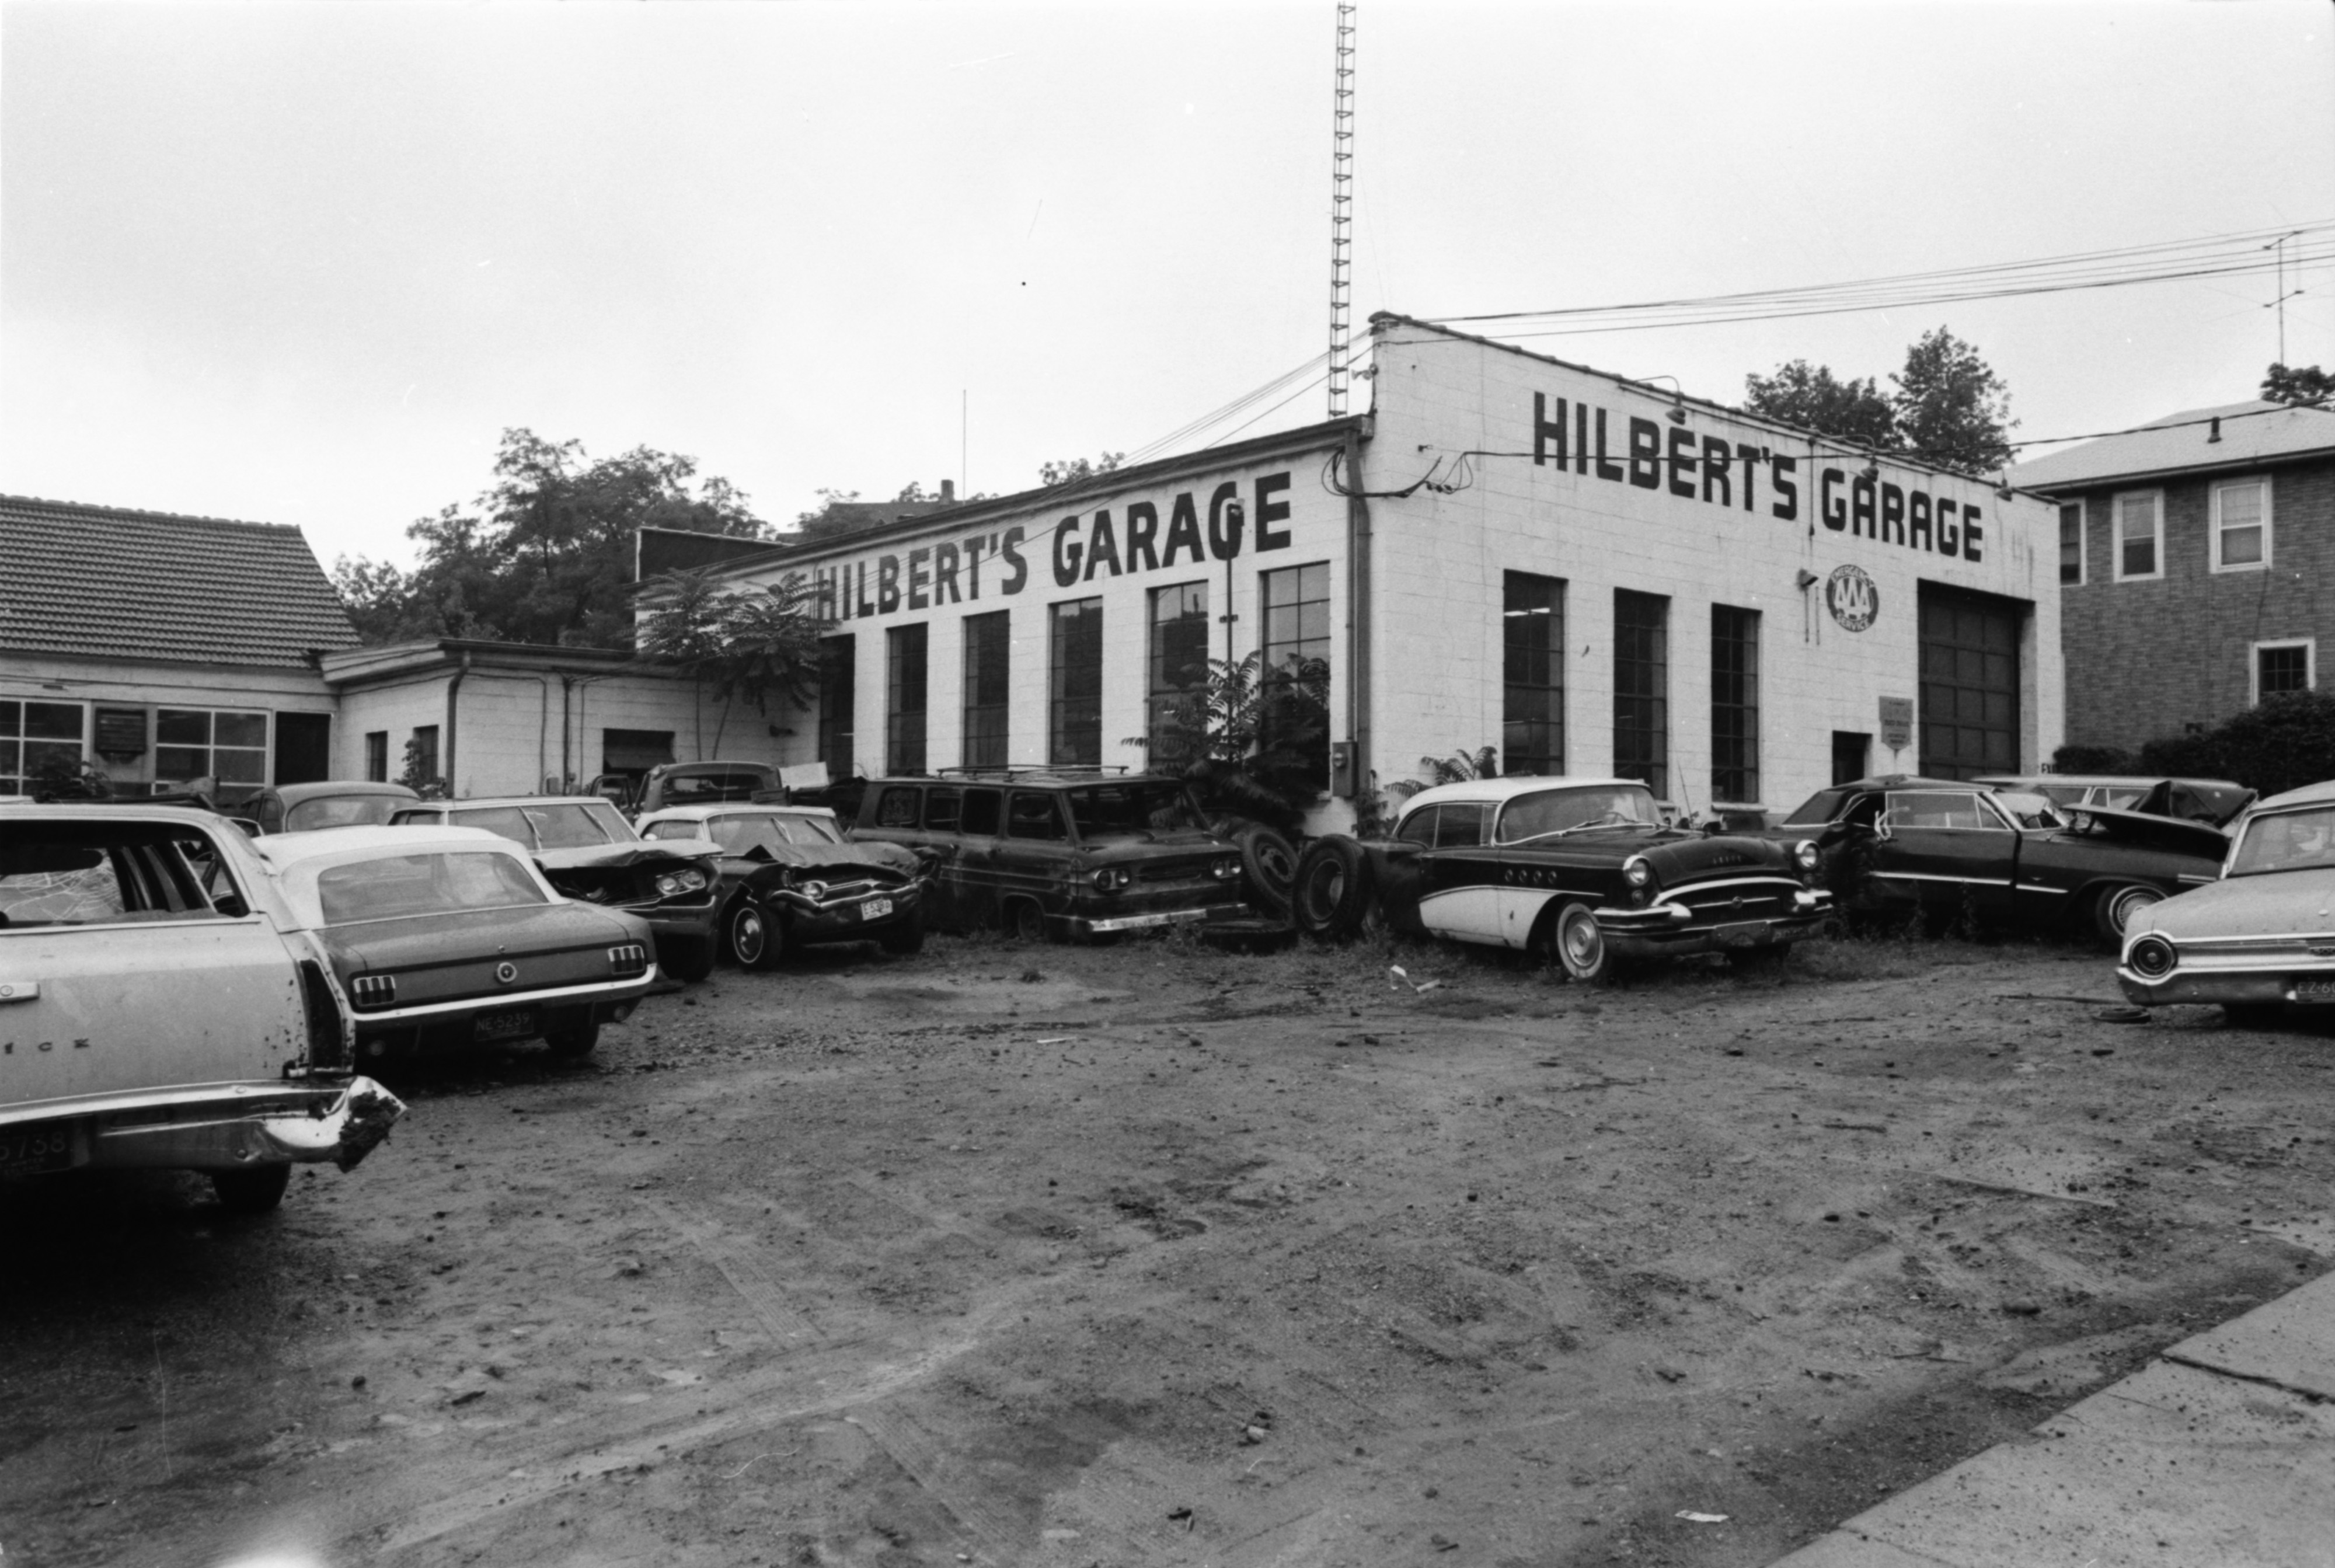 Wrecked Cars in front of Hilbert's Garage, August 1965 image